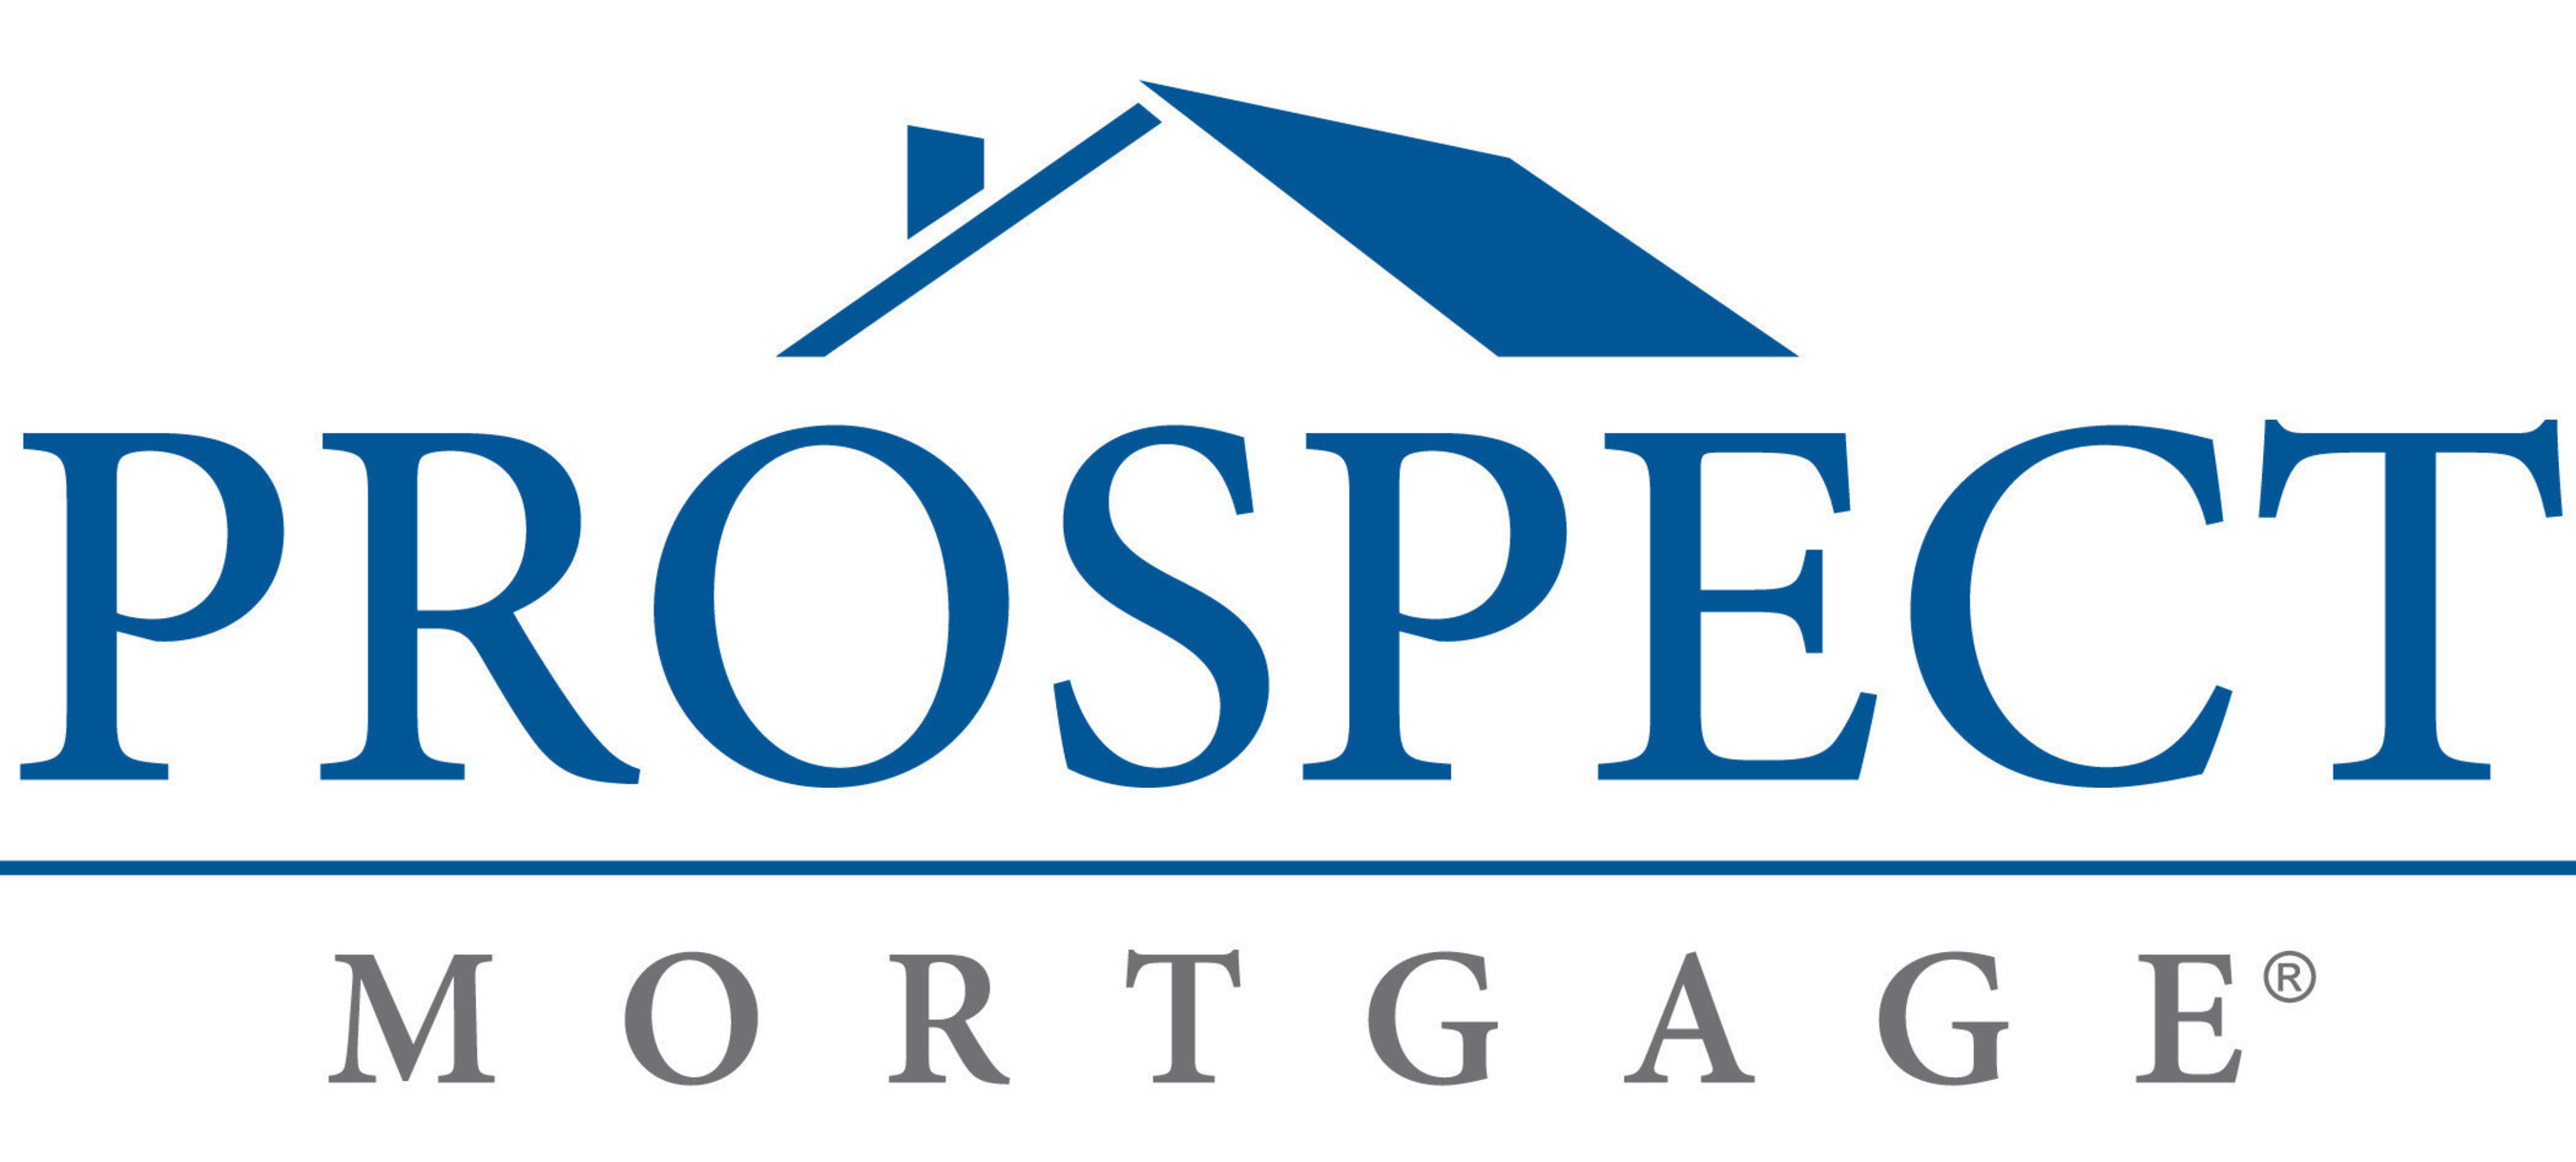 Prospect Hires 23 Loan Officers in the First 15 Days